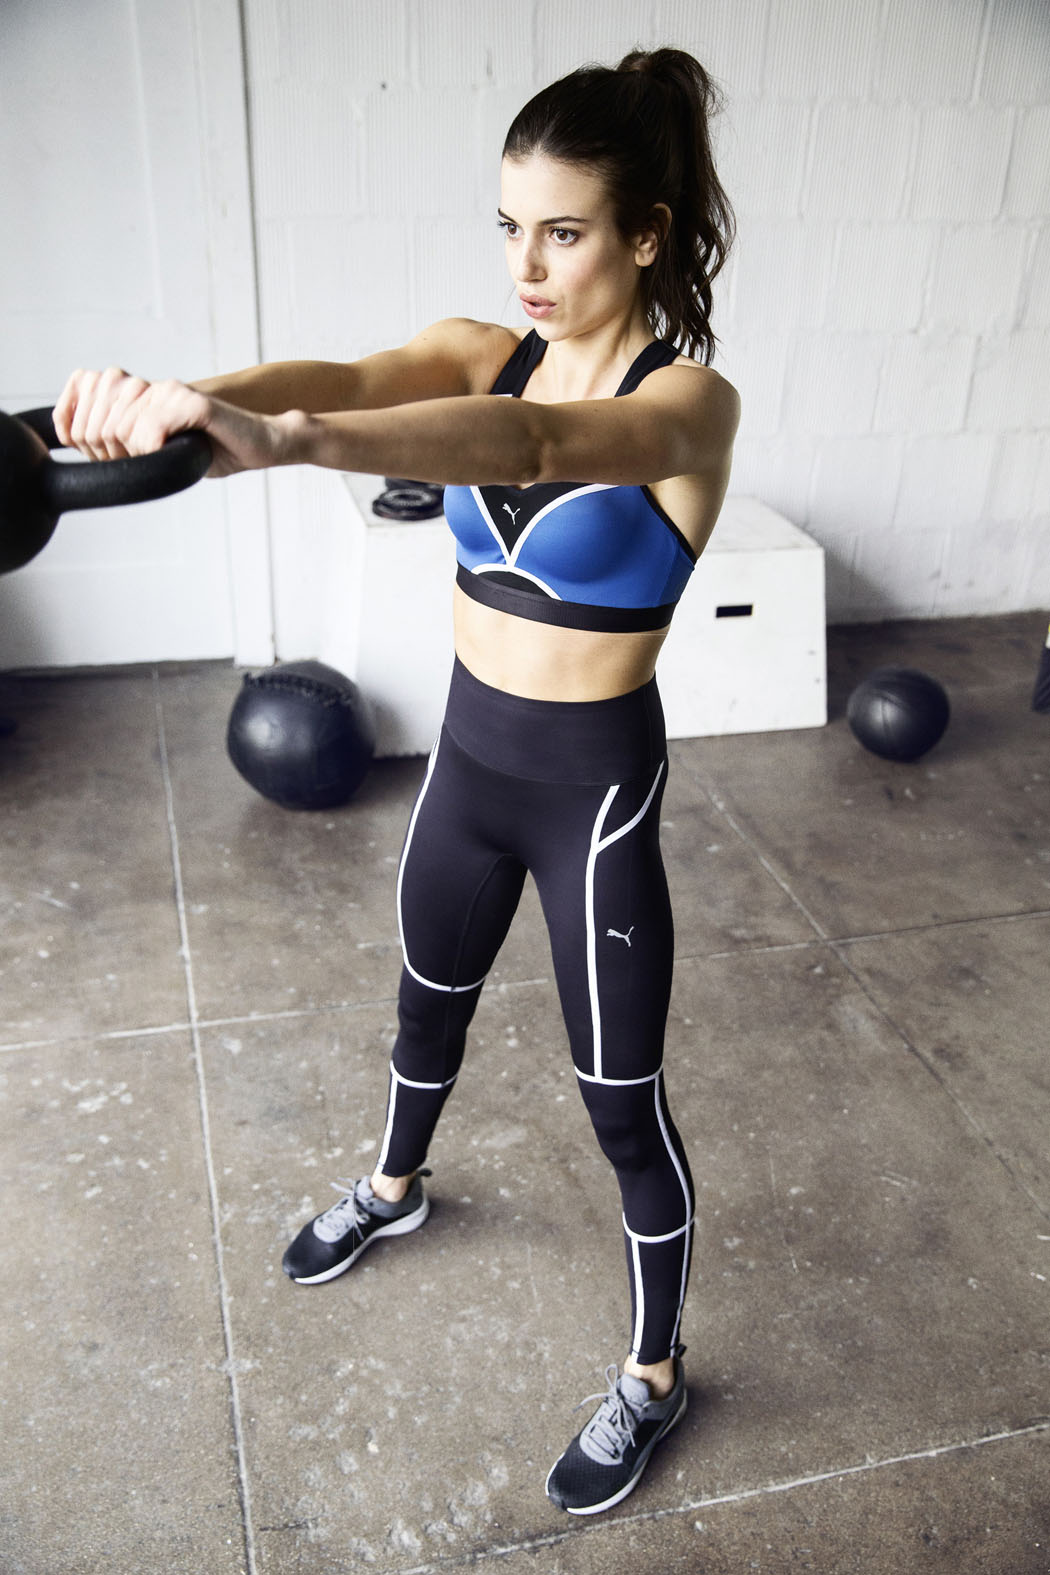 The PWRSHAPE Bra, Tank, Jacket and 3/4 tight is everything you need to look and feel good while training, proof that you can control and have it all at the same time. The PWRSHAPE kit features dryCell technology, a highly functional material that draws sweat away from the skin and helps keep you dry. Power Mesh detailing offers ventilation to keep you cool throughout your workout.